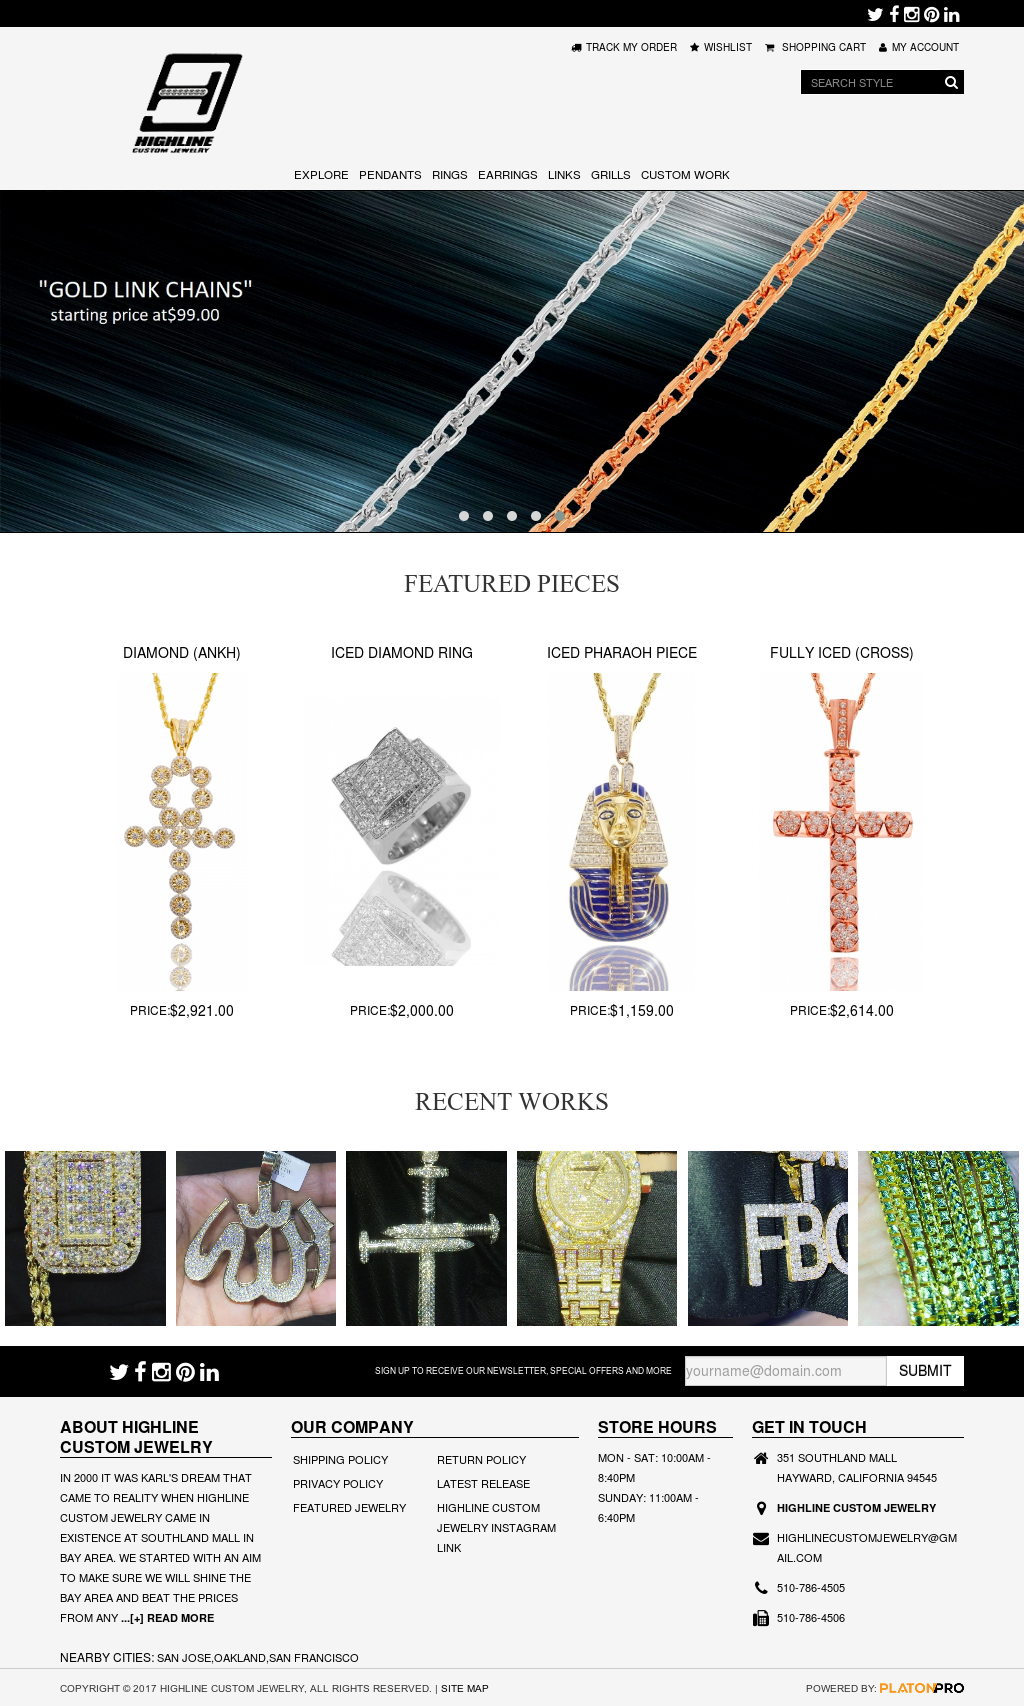 Highline custom jewelry competitors revenue and employees for Highline custom jewelry ig